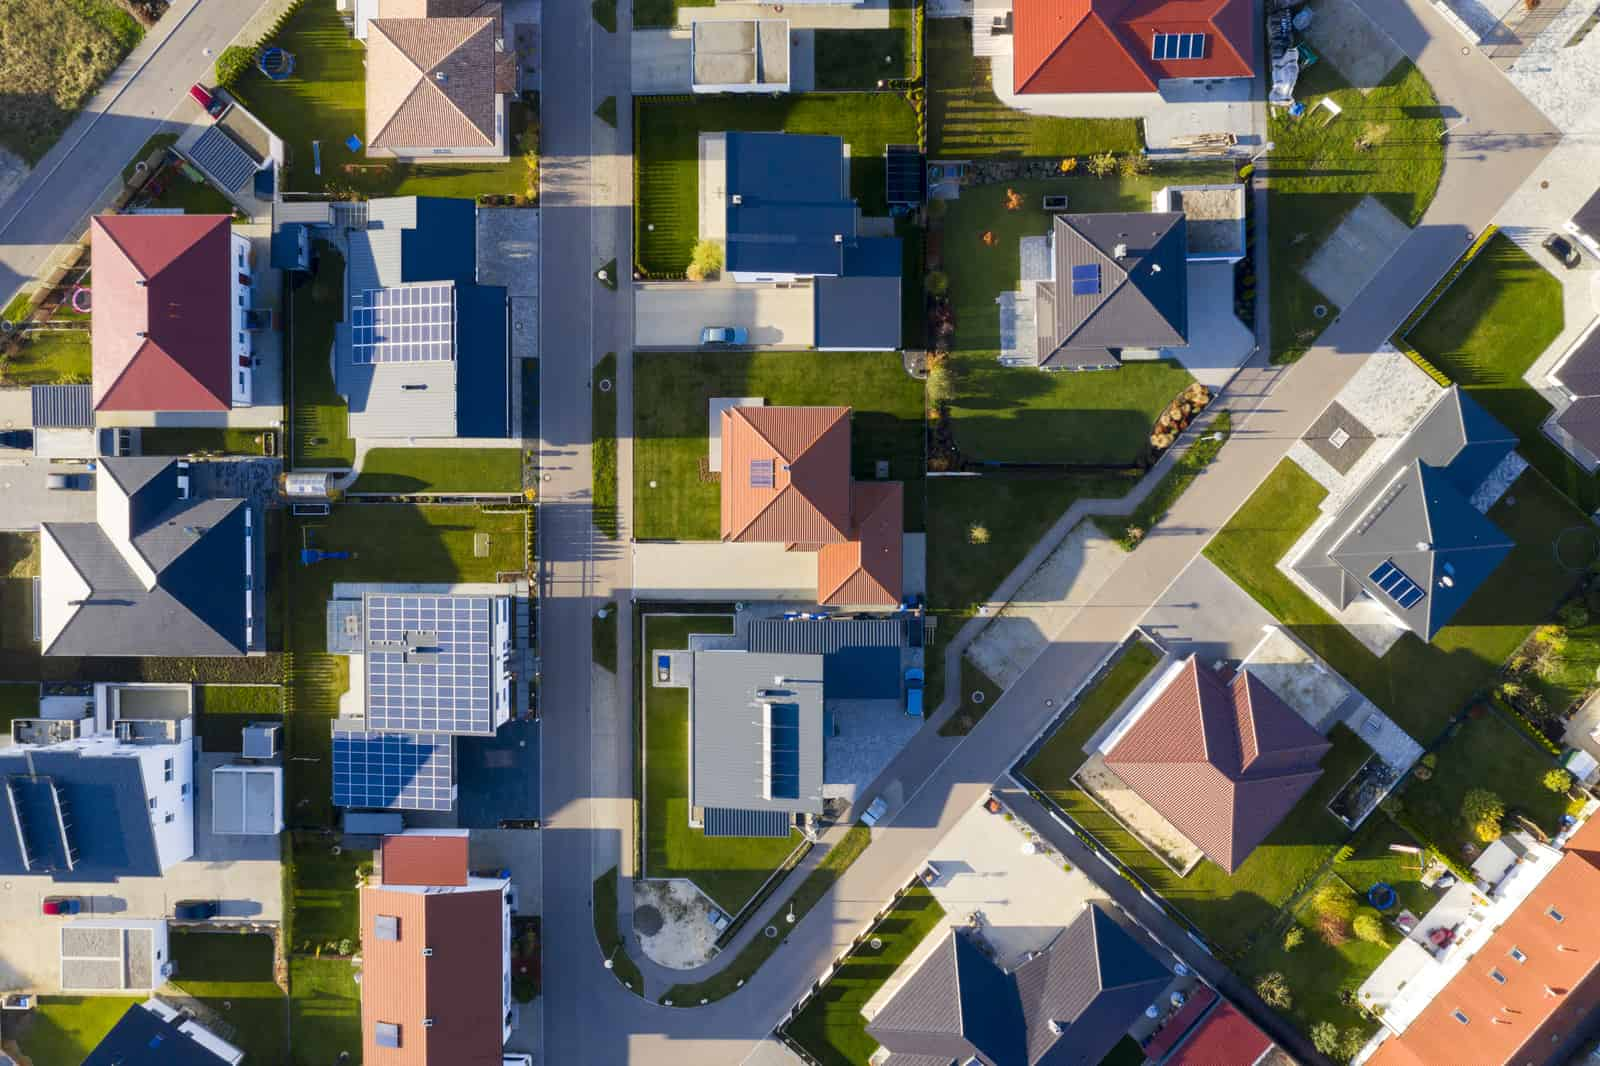 Houses in a New Housing Development, Aerial View